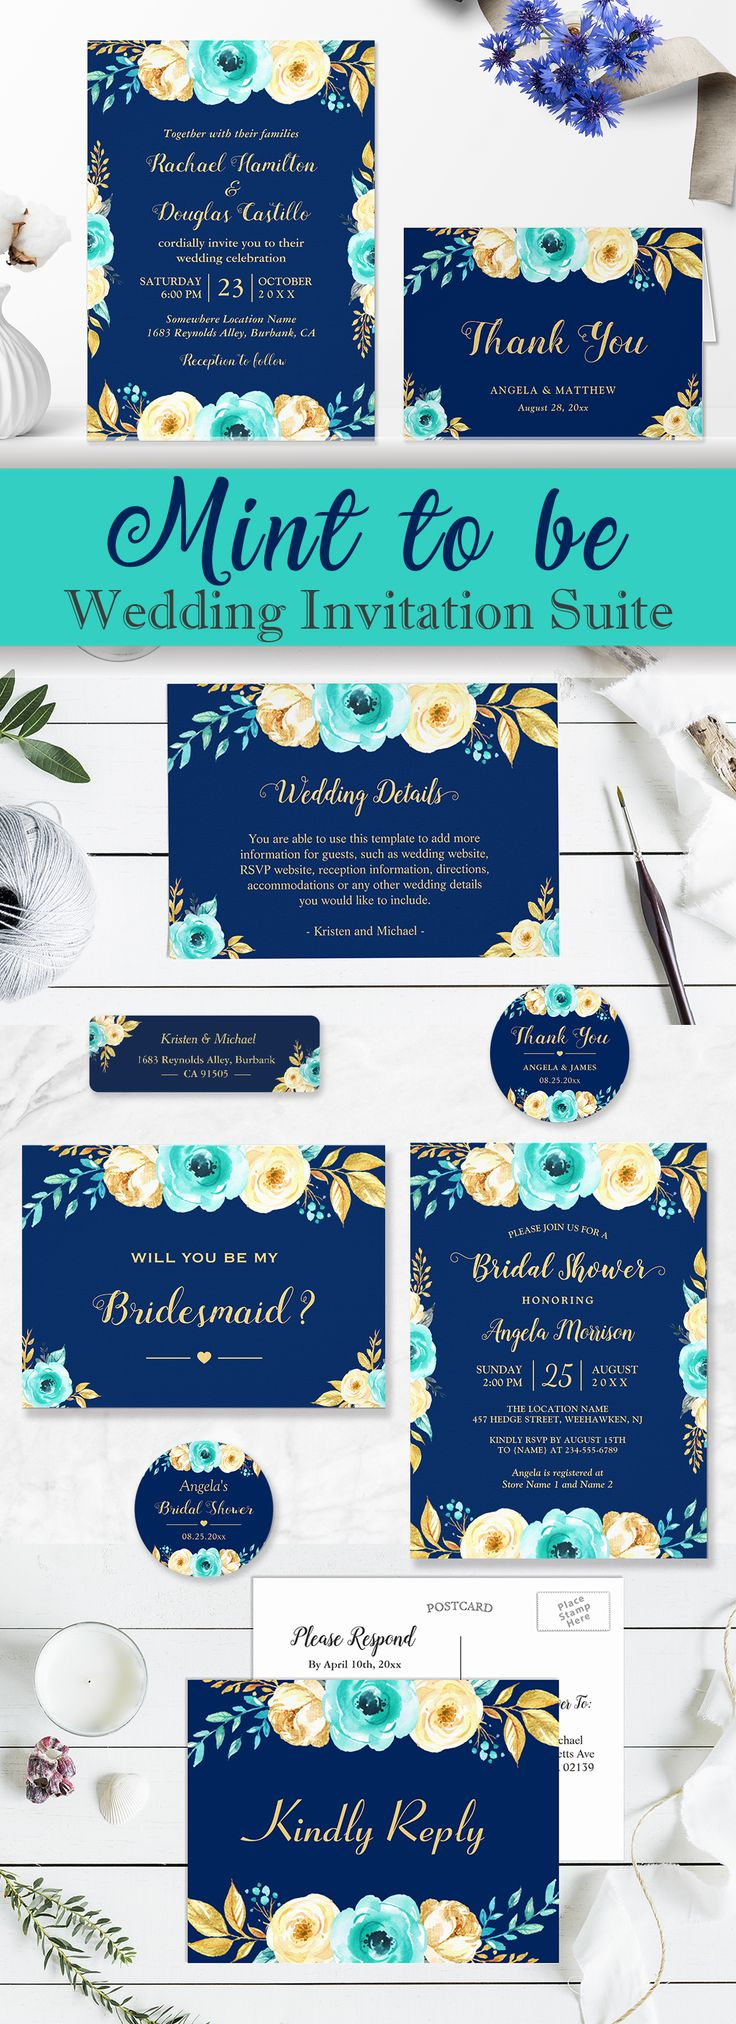 destination wedding invitation rsvp date%0A Navy Blue  u     Teal Mint Gold Floral Wedding Invitation Suite